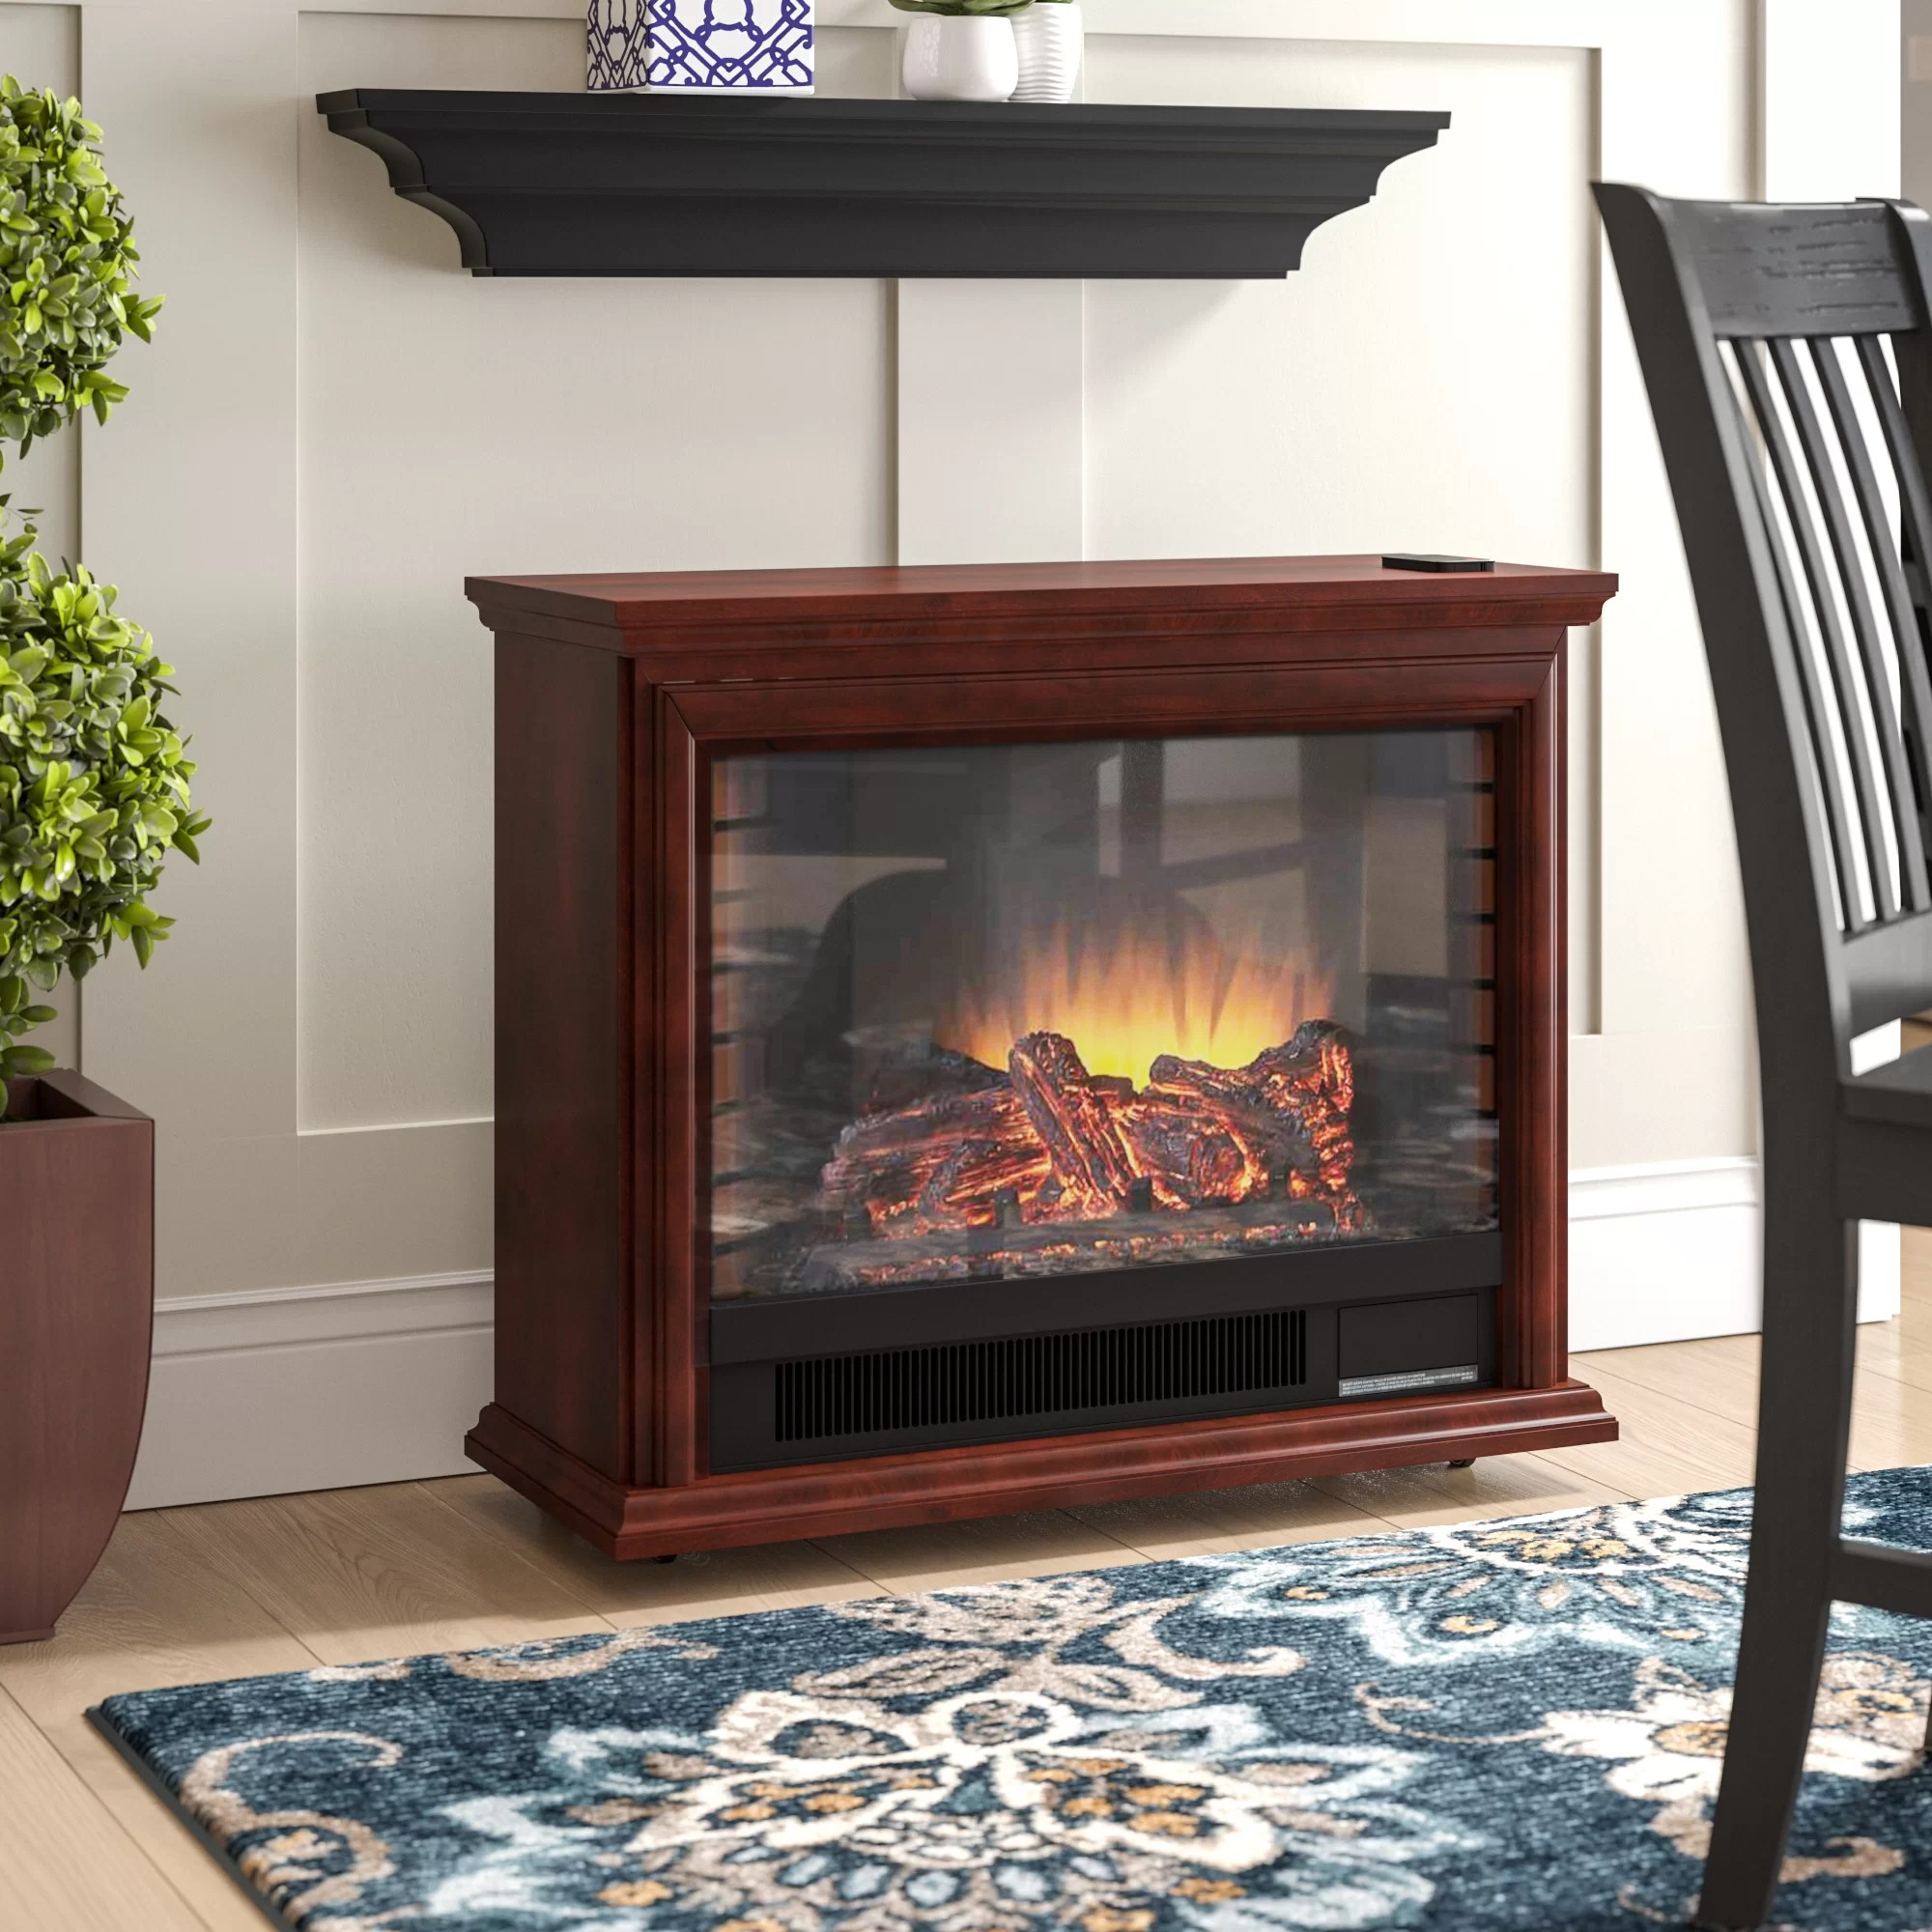 Gas Vs Electric Fireplace Pros And Cons Mcgregor Mobile Electric Fireplace